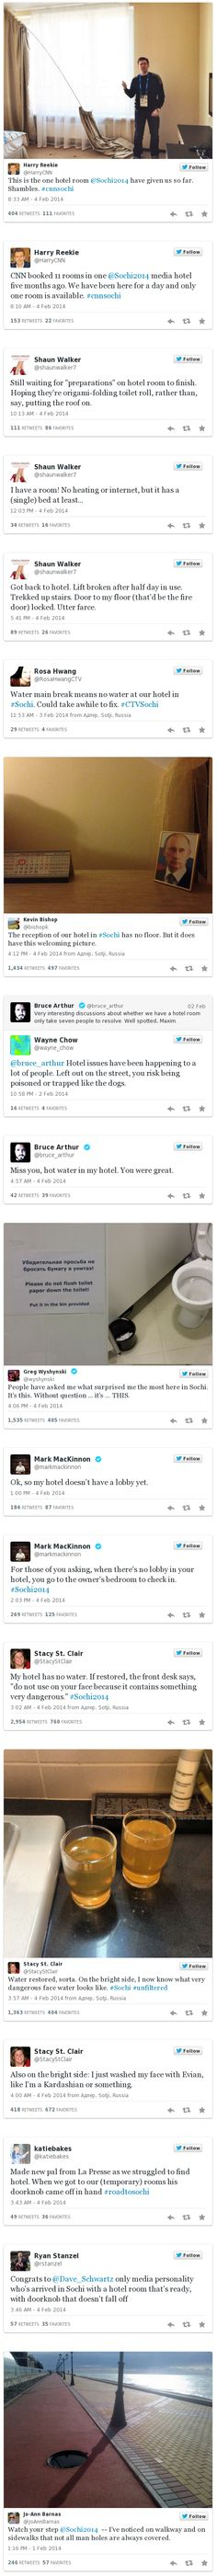 Hilarious Tweets From Journalists Arriving At The Sochi 2014 Winter Olympics Complaining About Their Hotel Rooms